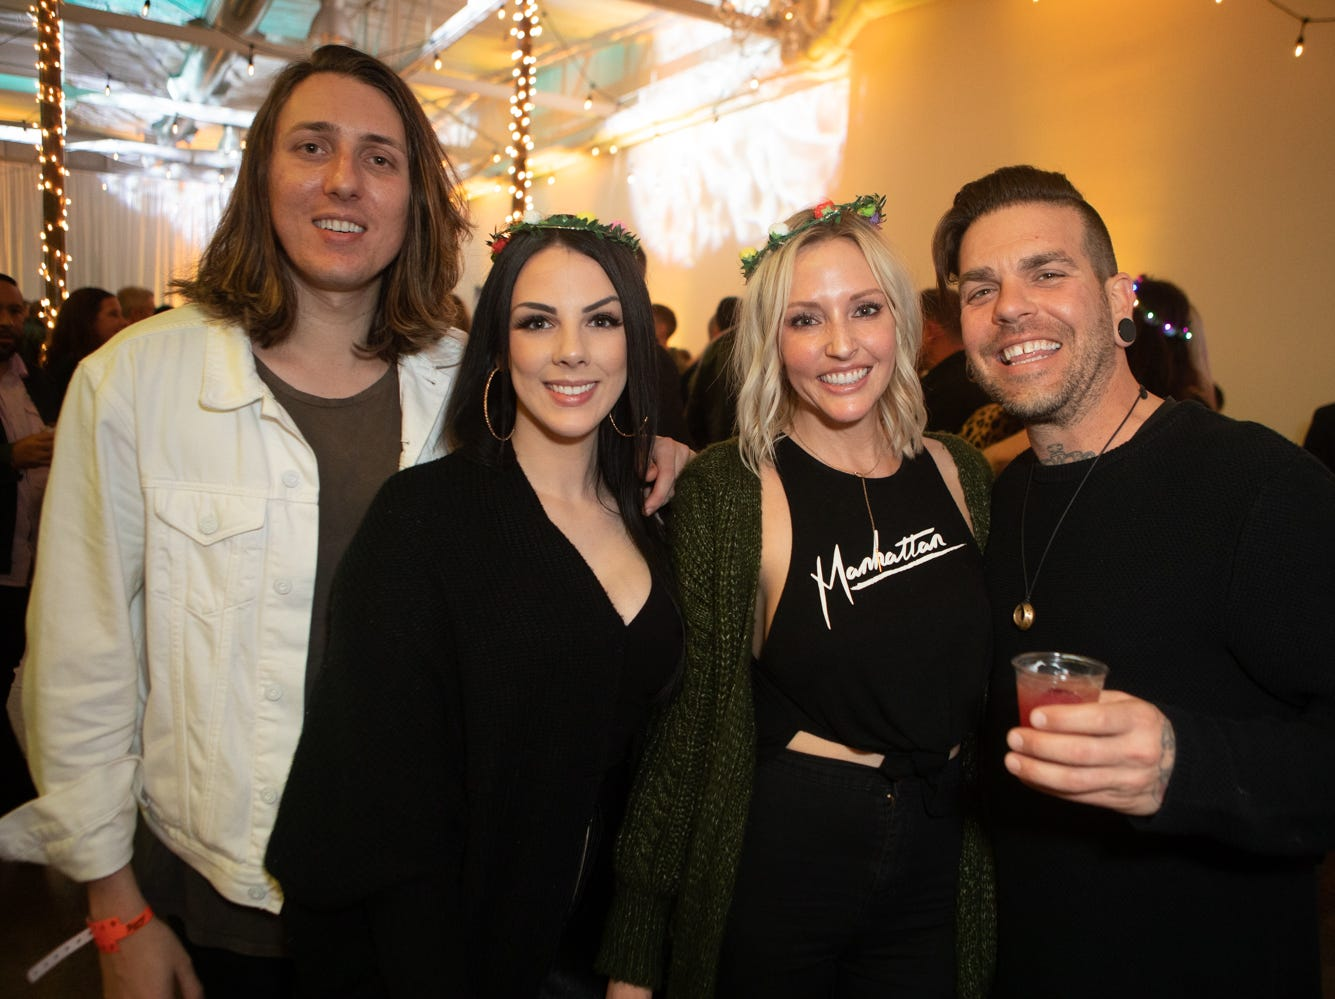 Drinks, good vibes and fun weren't hard to find at the Top Bars event at the Croft on Feb. 17, 2019, in Phoenix.